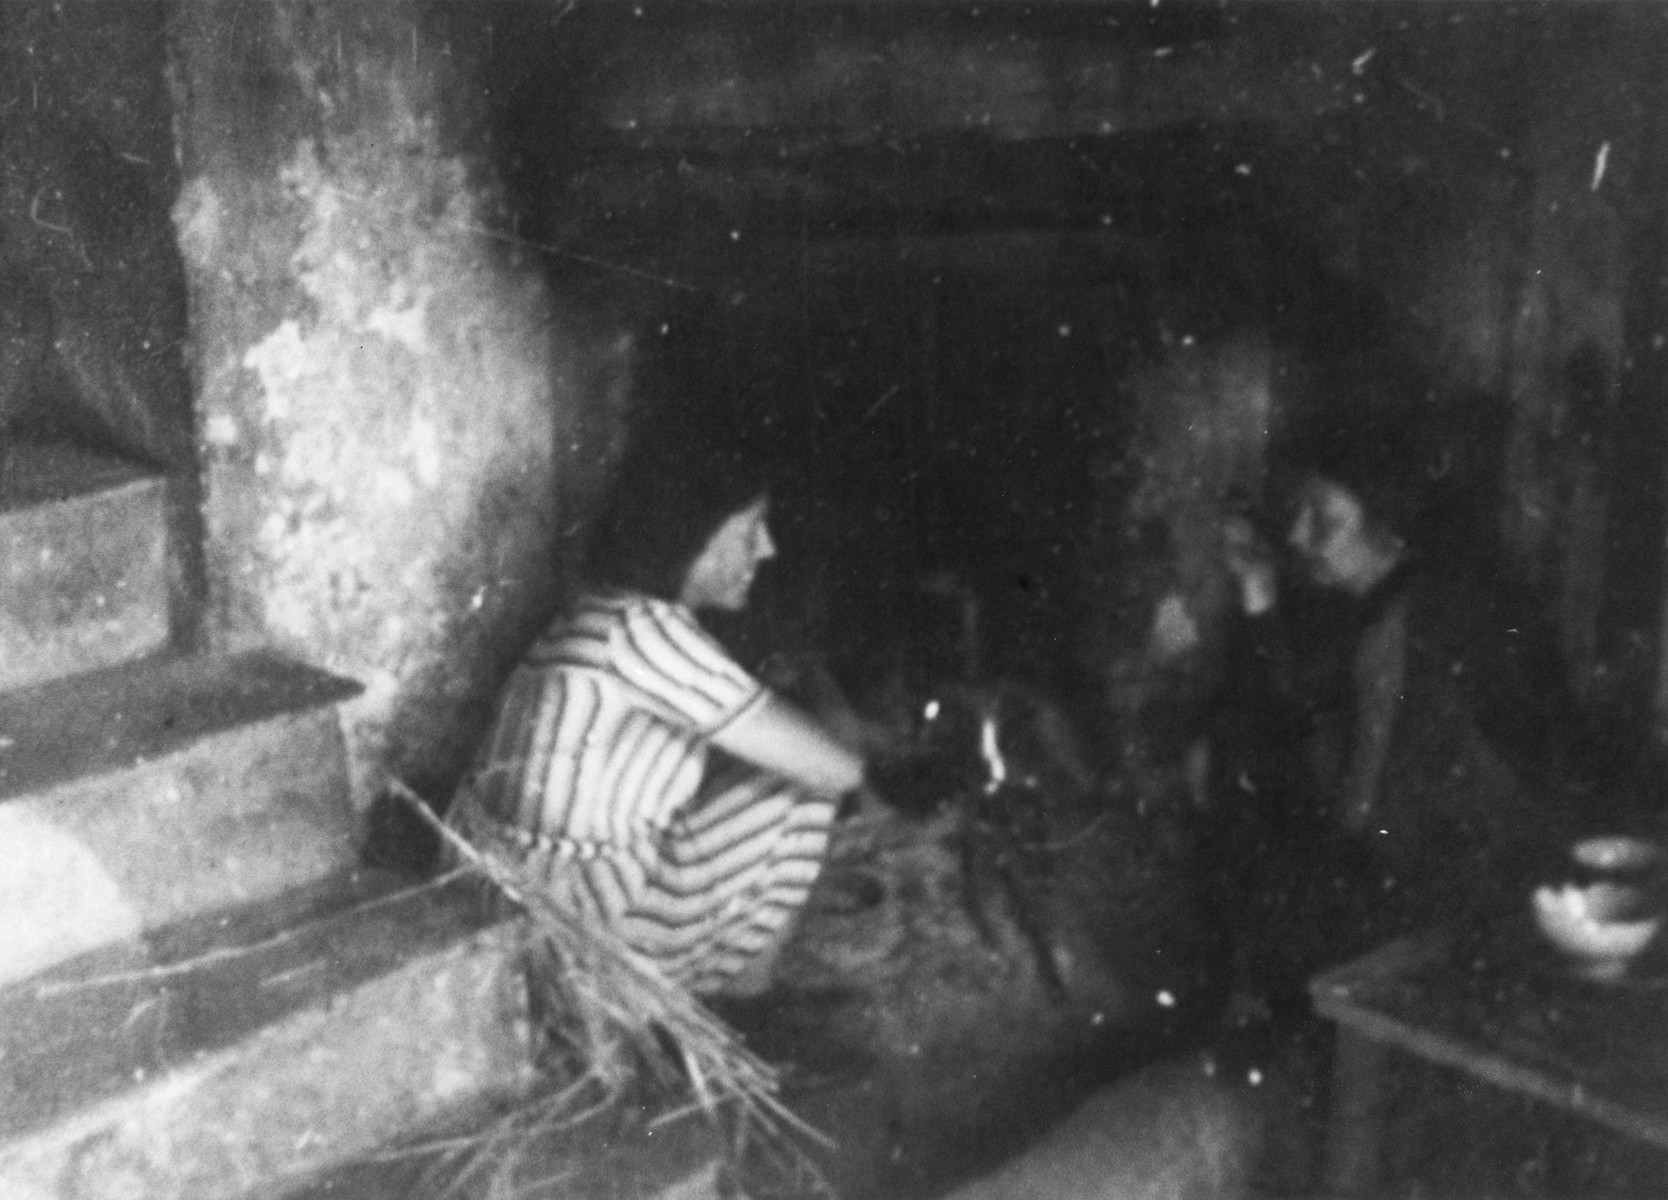 Jewish refugees hide in a farm Valle Stura, Italy after crossing over the border from France.